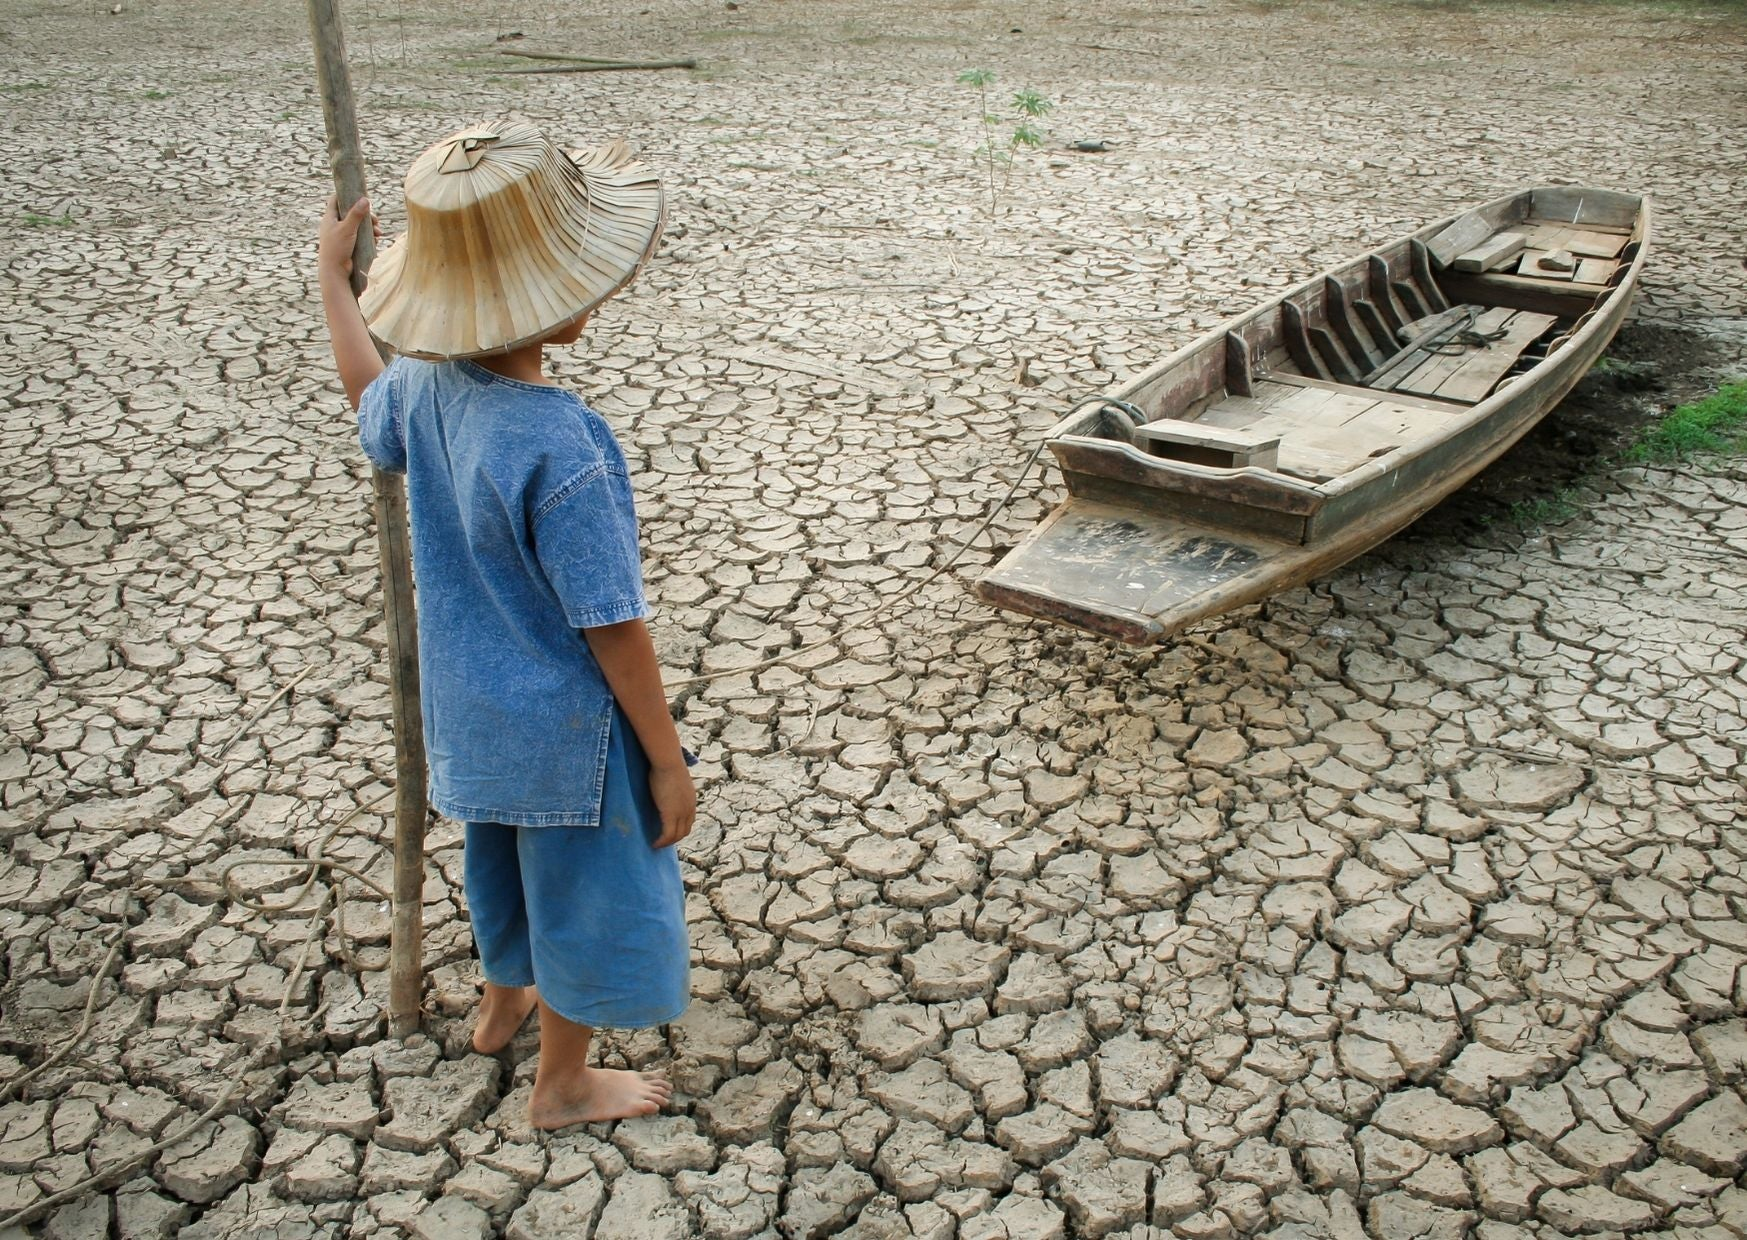 Global Warming | Personal Steps You Can Take to Fight